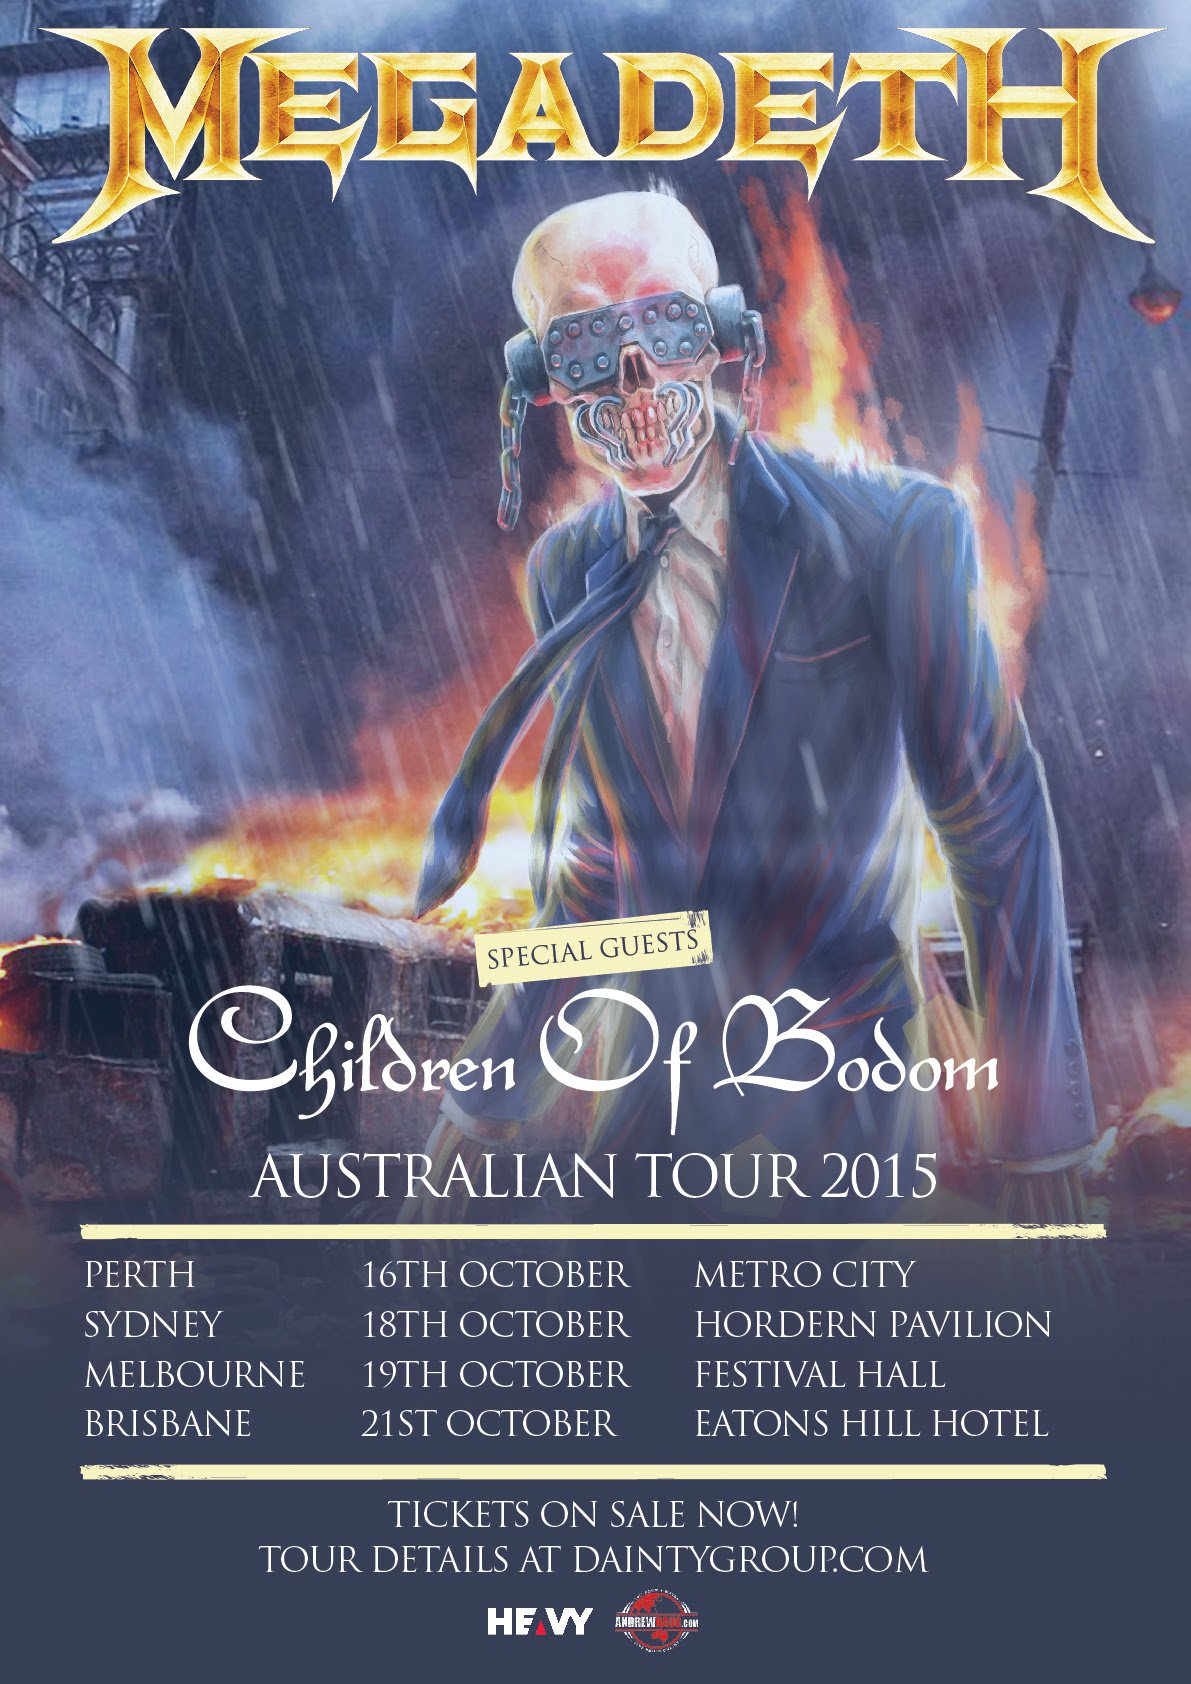 Megadeth/Children of Bodom – Eatons Hill Hotel, Brisbane, 21/10/15